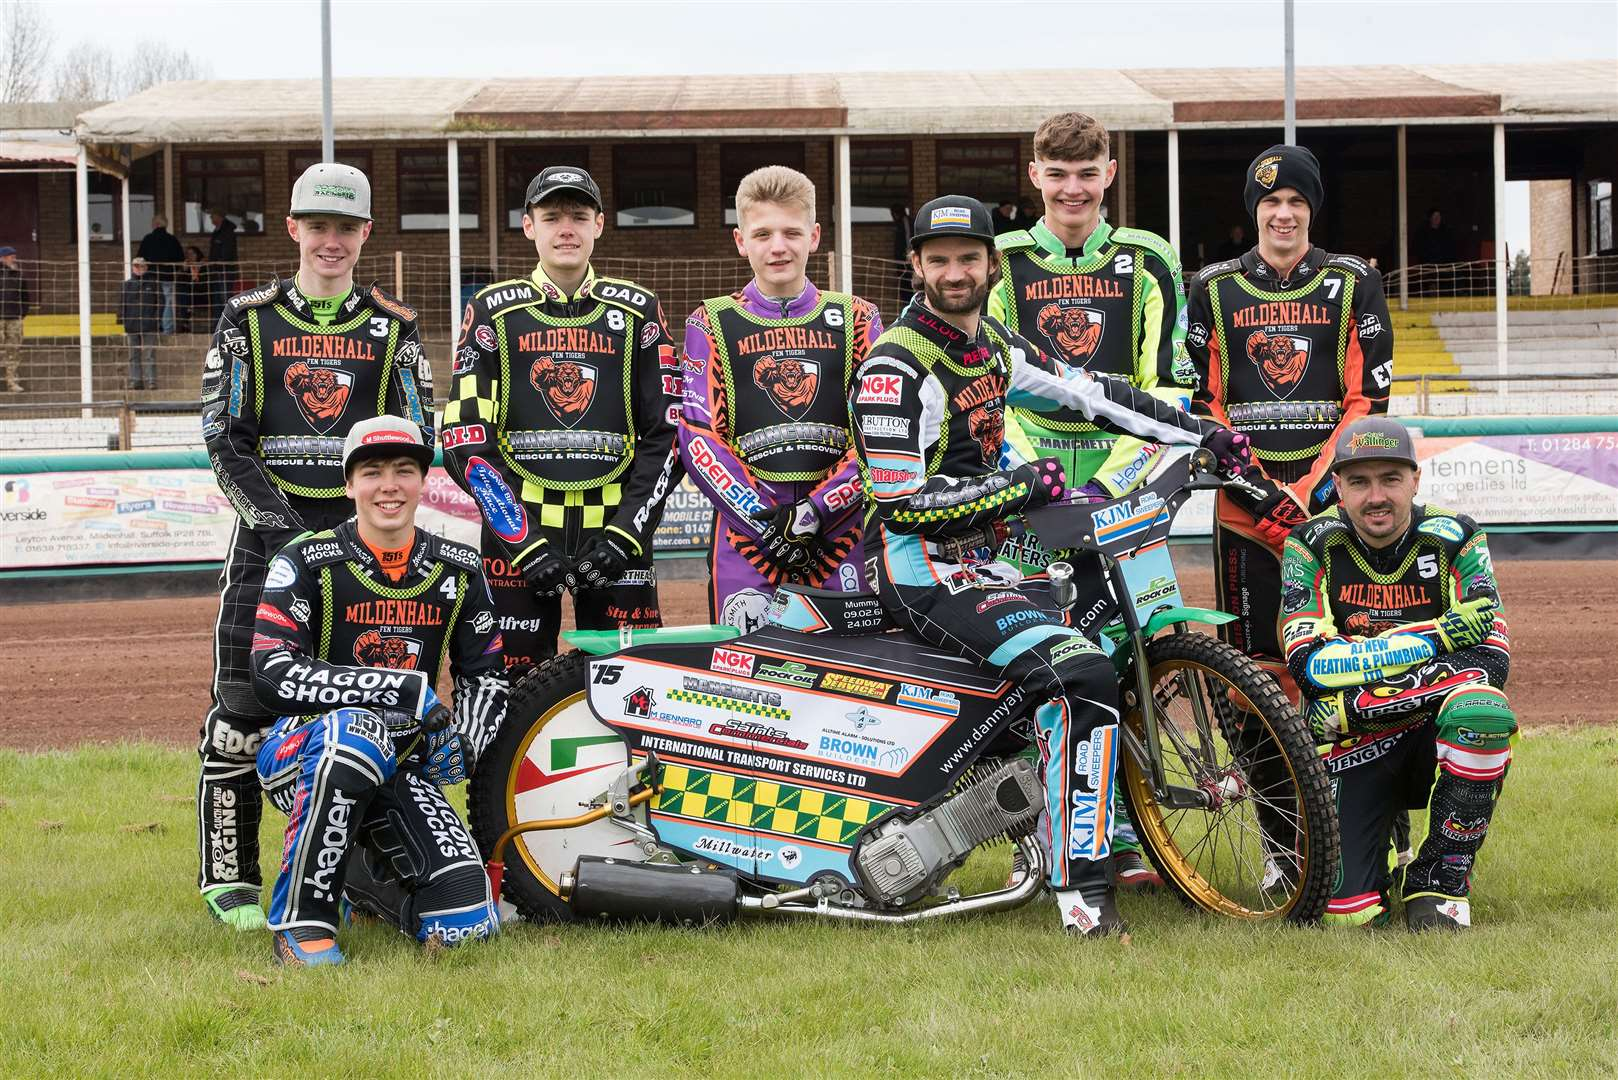 Mildenhall Fen Tigers Press and Practice Day Fen Tigers team 2019 Danny Ayres, Sam Bebee, Charlie Brooks, Jason Edwards, Dave Wallinger, Elliot Kelly, Macauley Leek and Sam Norris Picture by Mark Westley. (8751031)